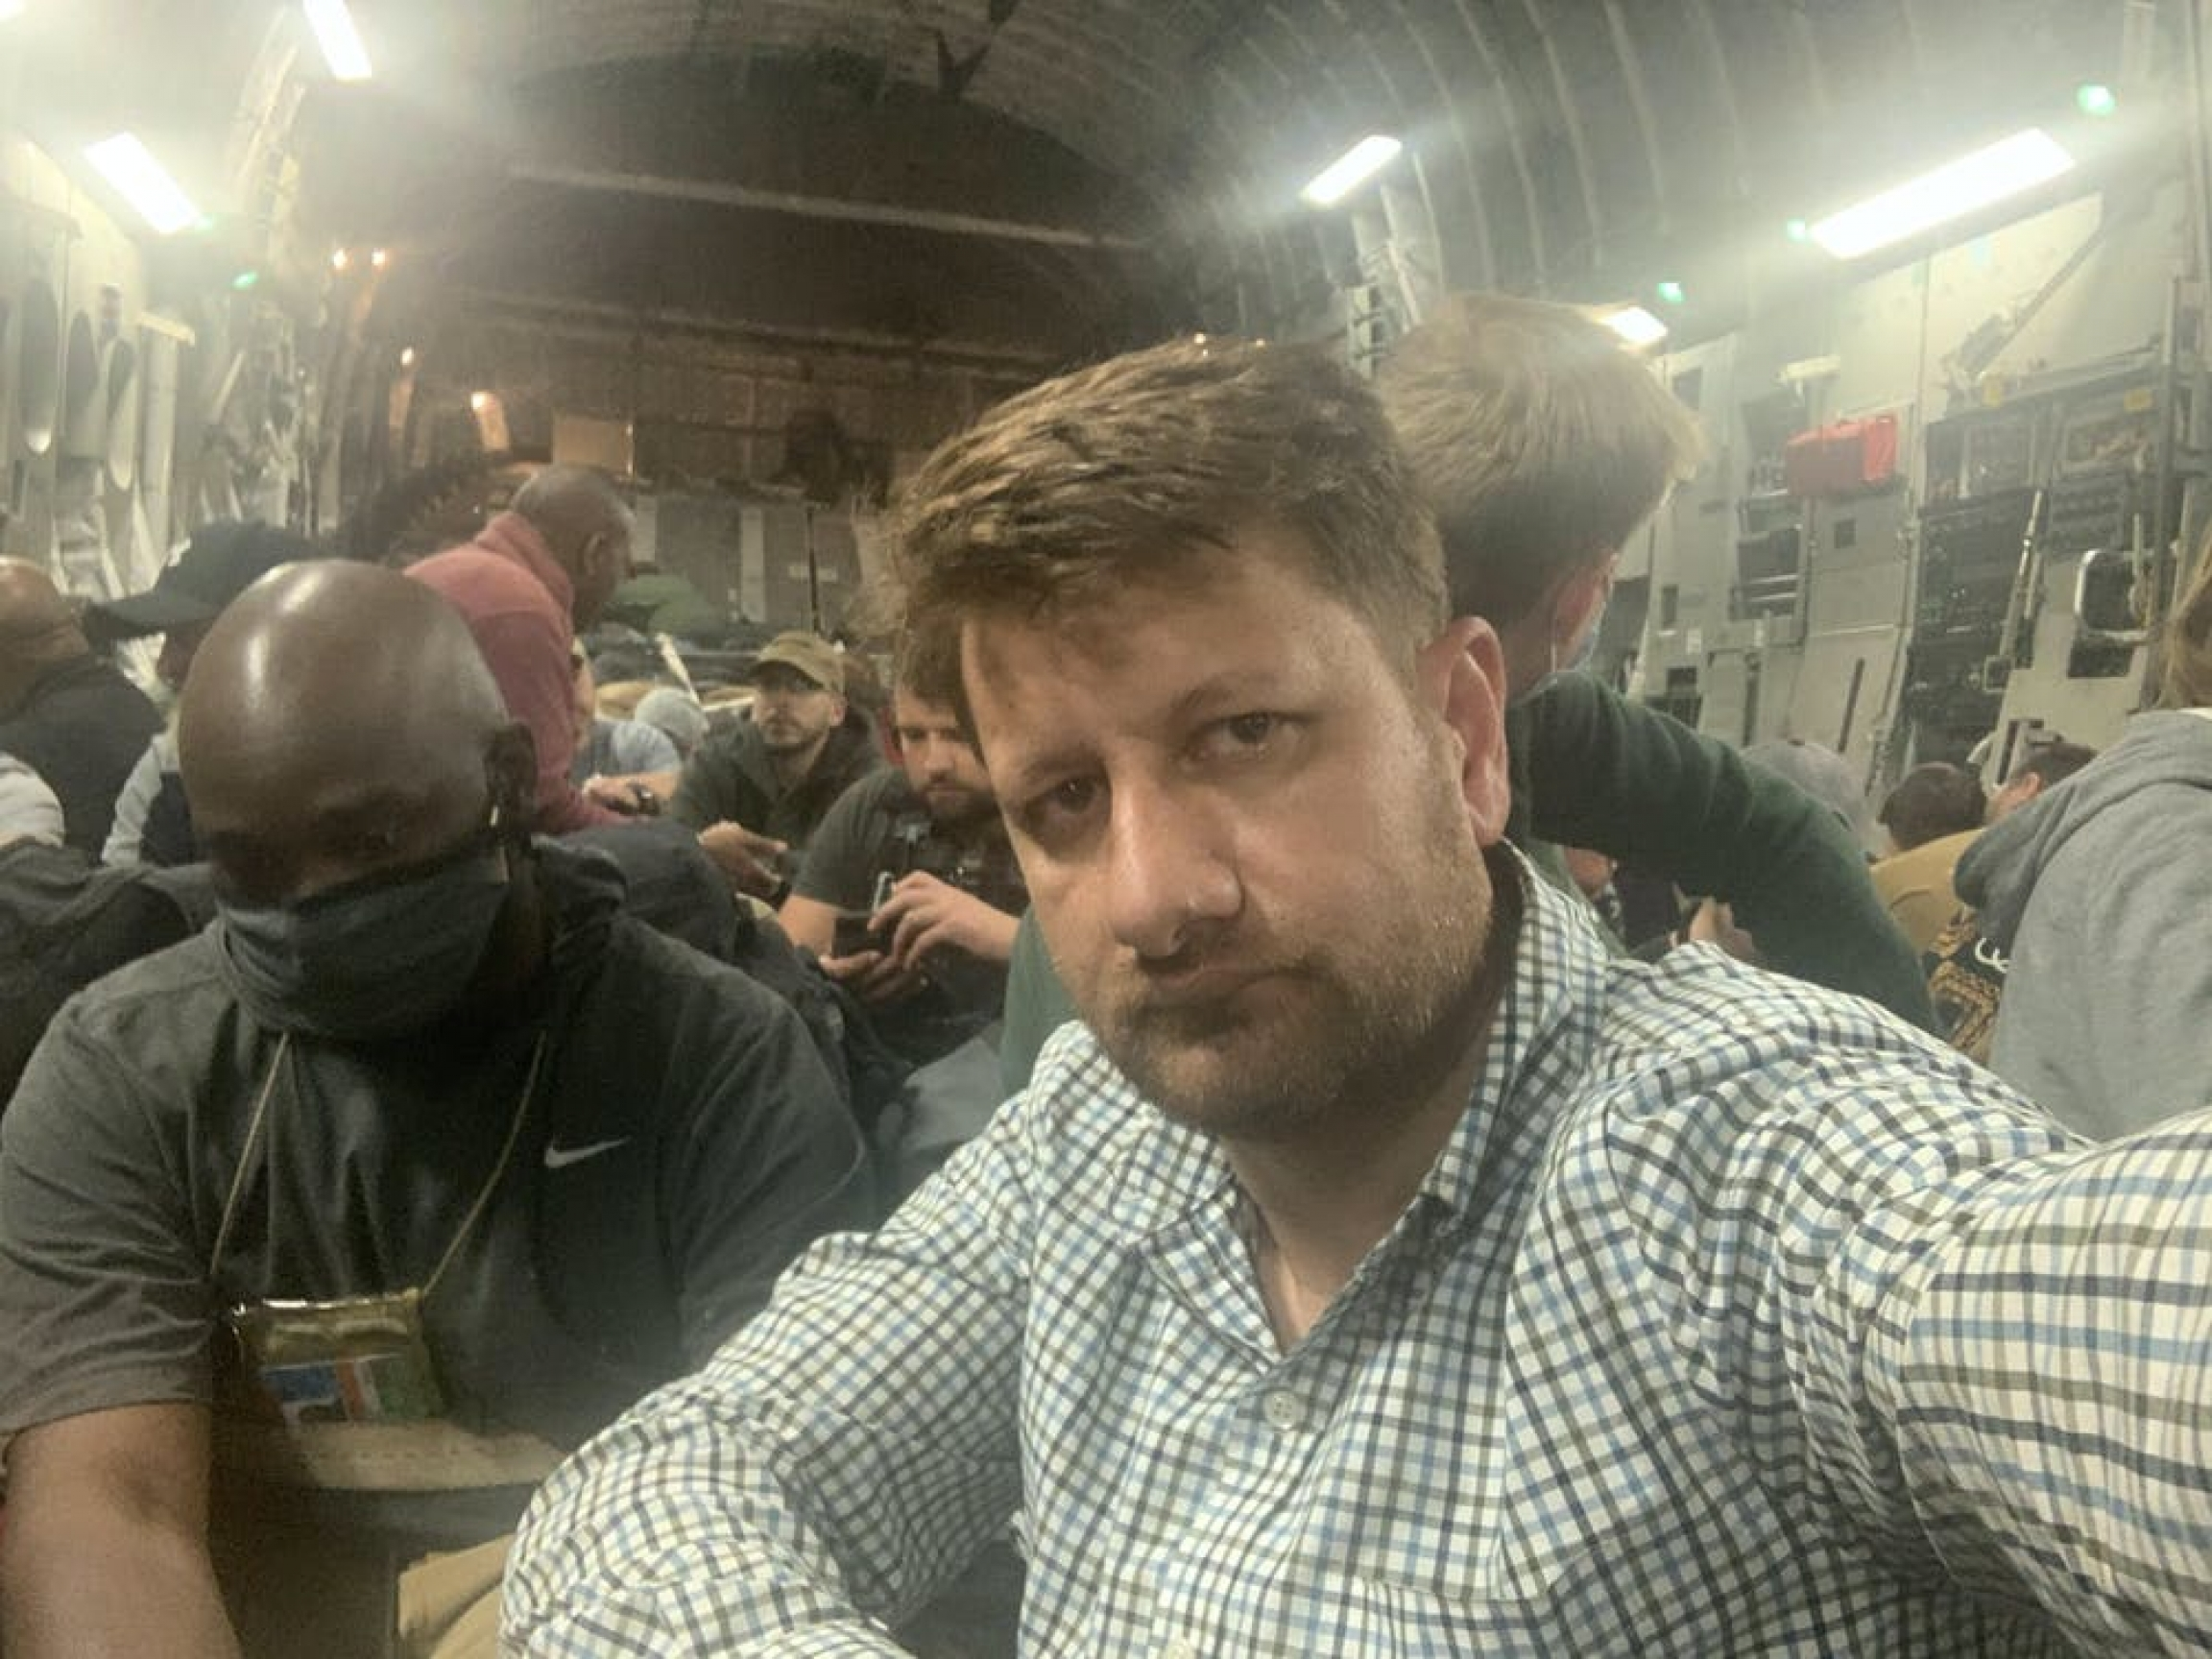 Selfie of Sufizada seated inside a crowded transport